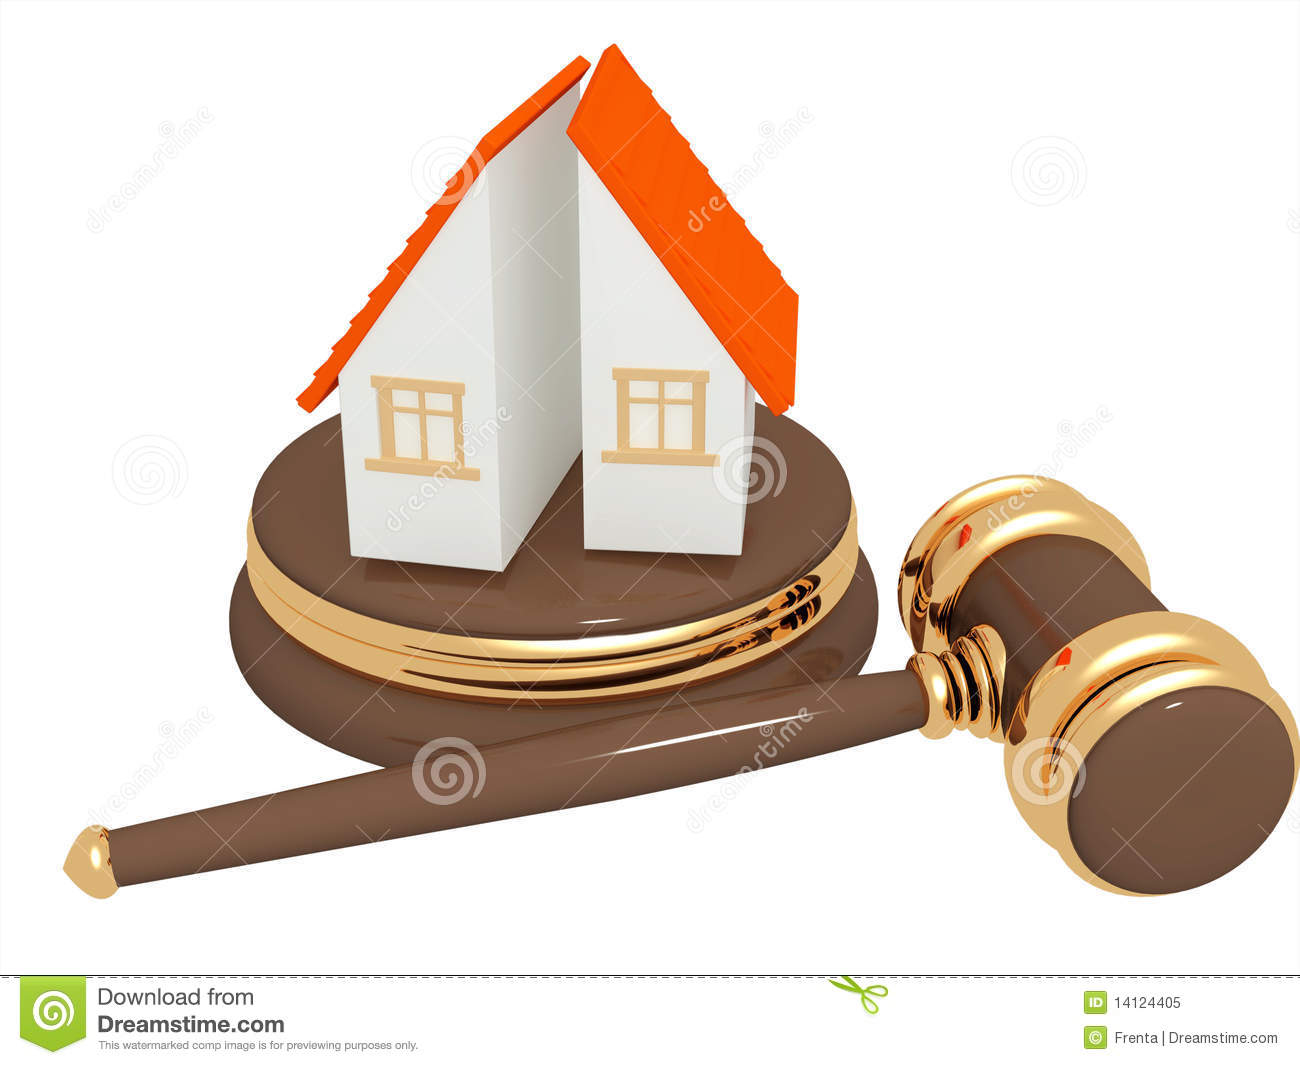 Something Interesting About Divorce Property Division